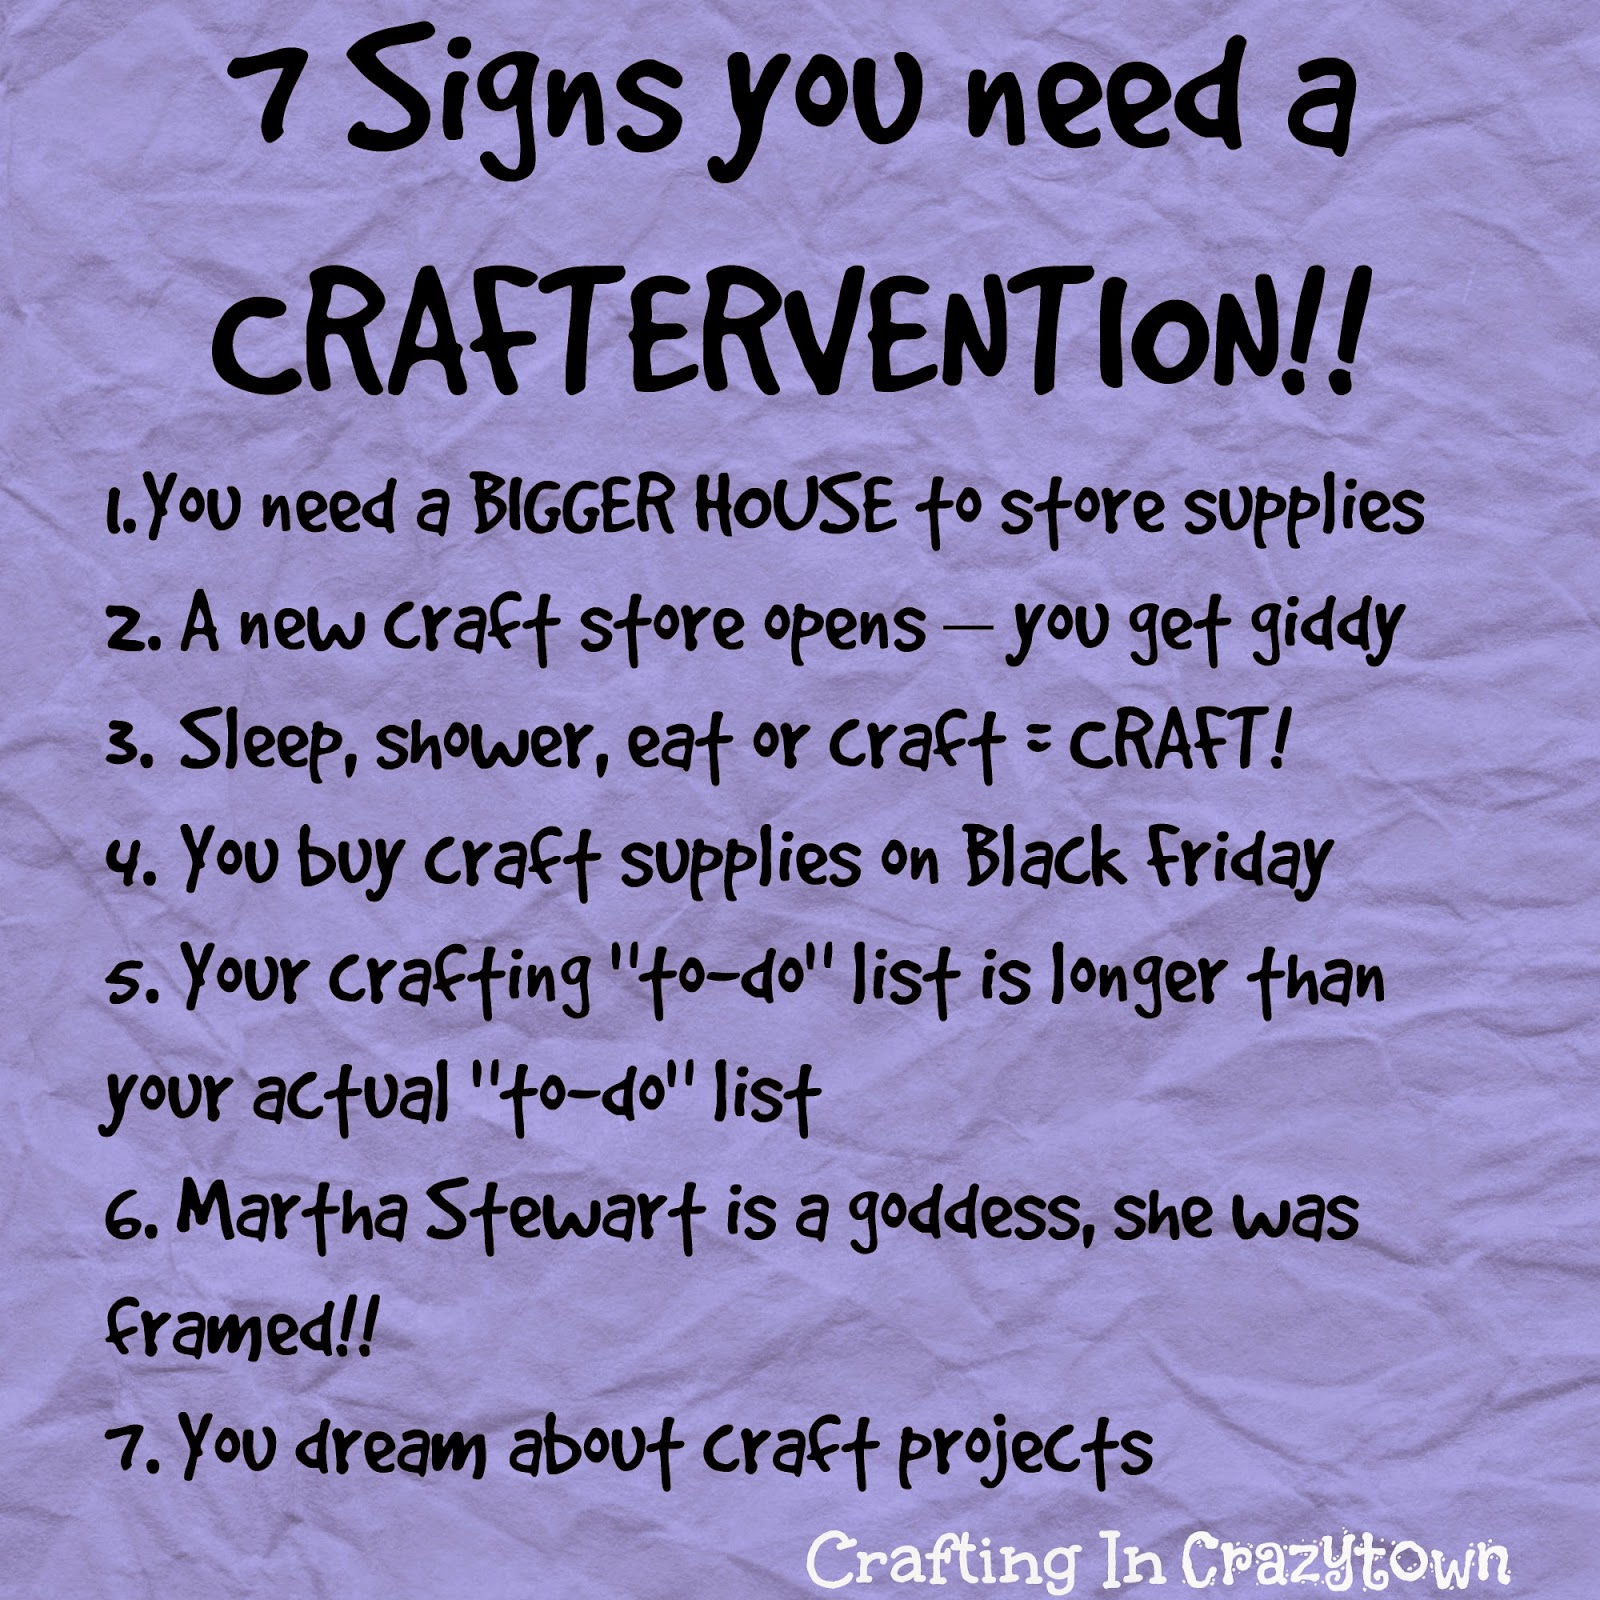 7 Signs You May Need a CRAFTERVENTION by Crafting In Crazytown visit me at www.craftingincrazytown.blogspot.com or www.facebook.com/BeckySuesBowAndSews